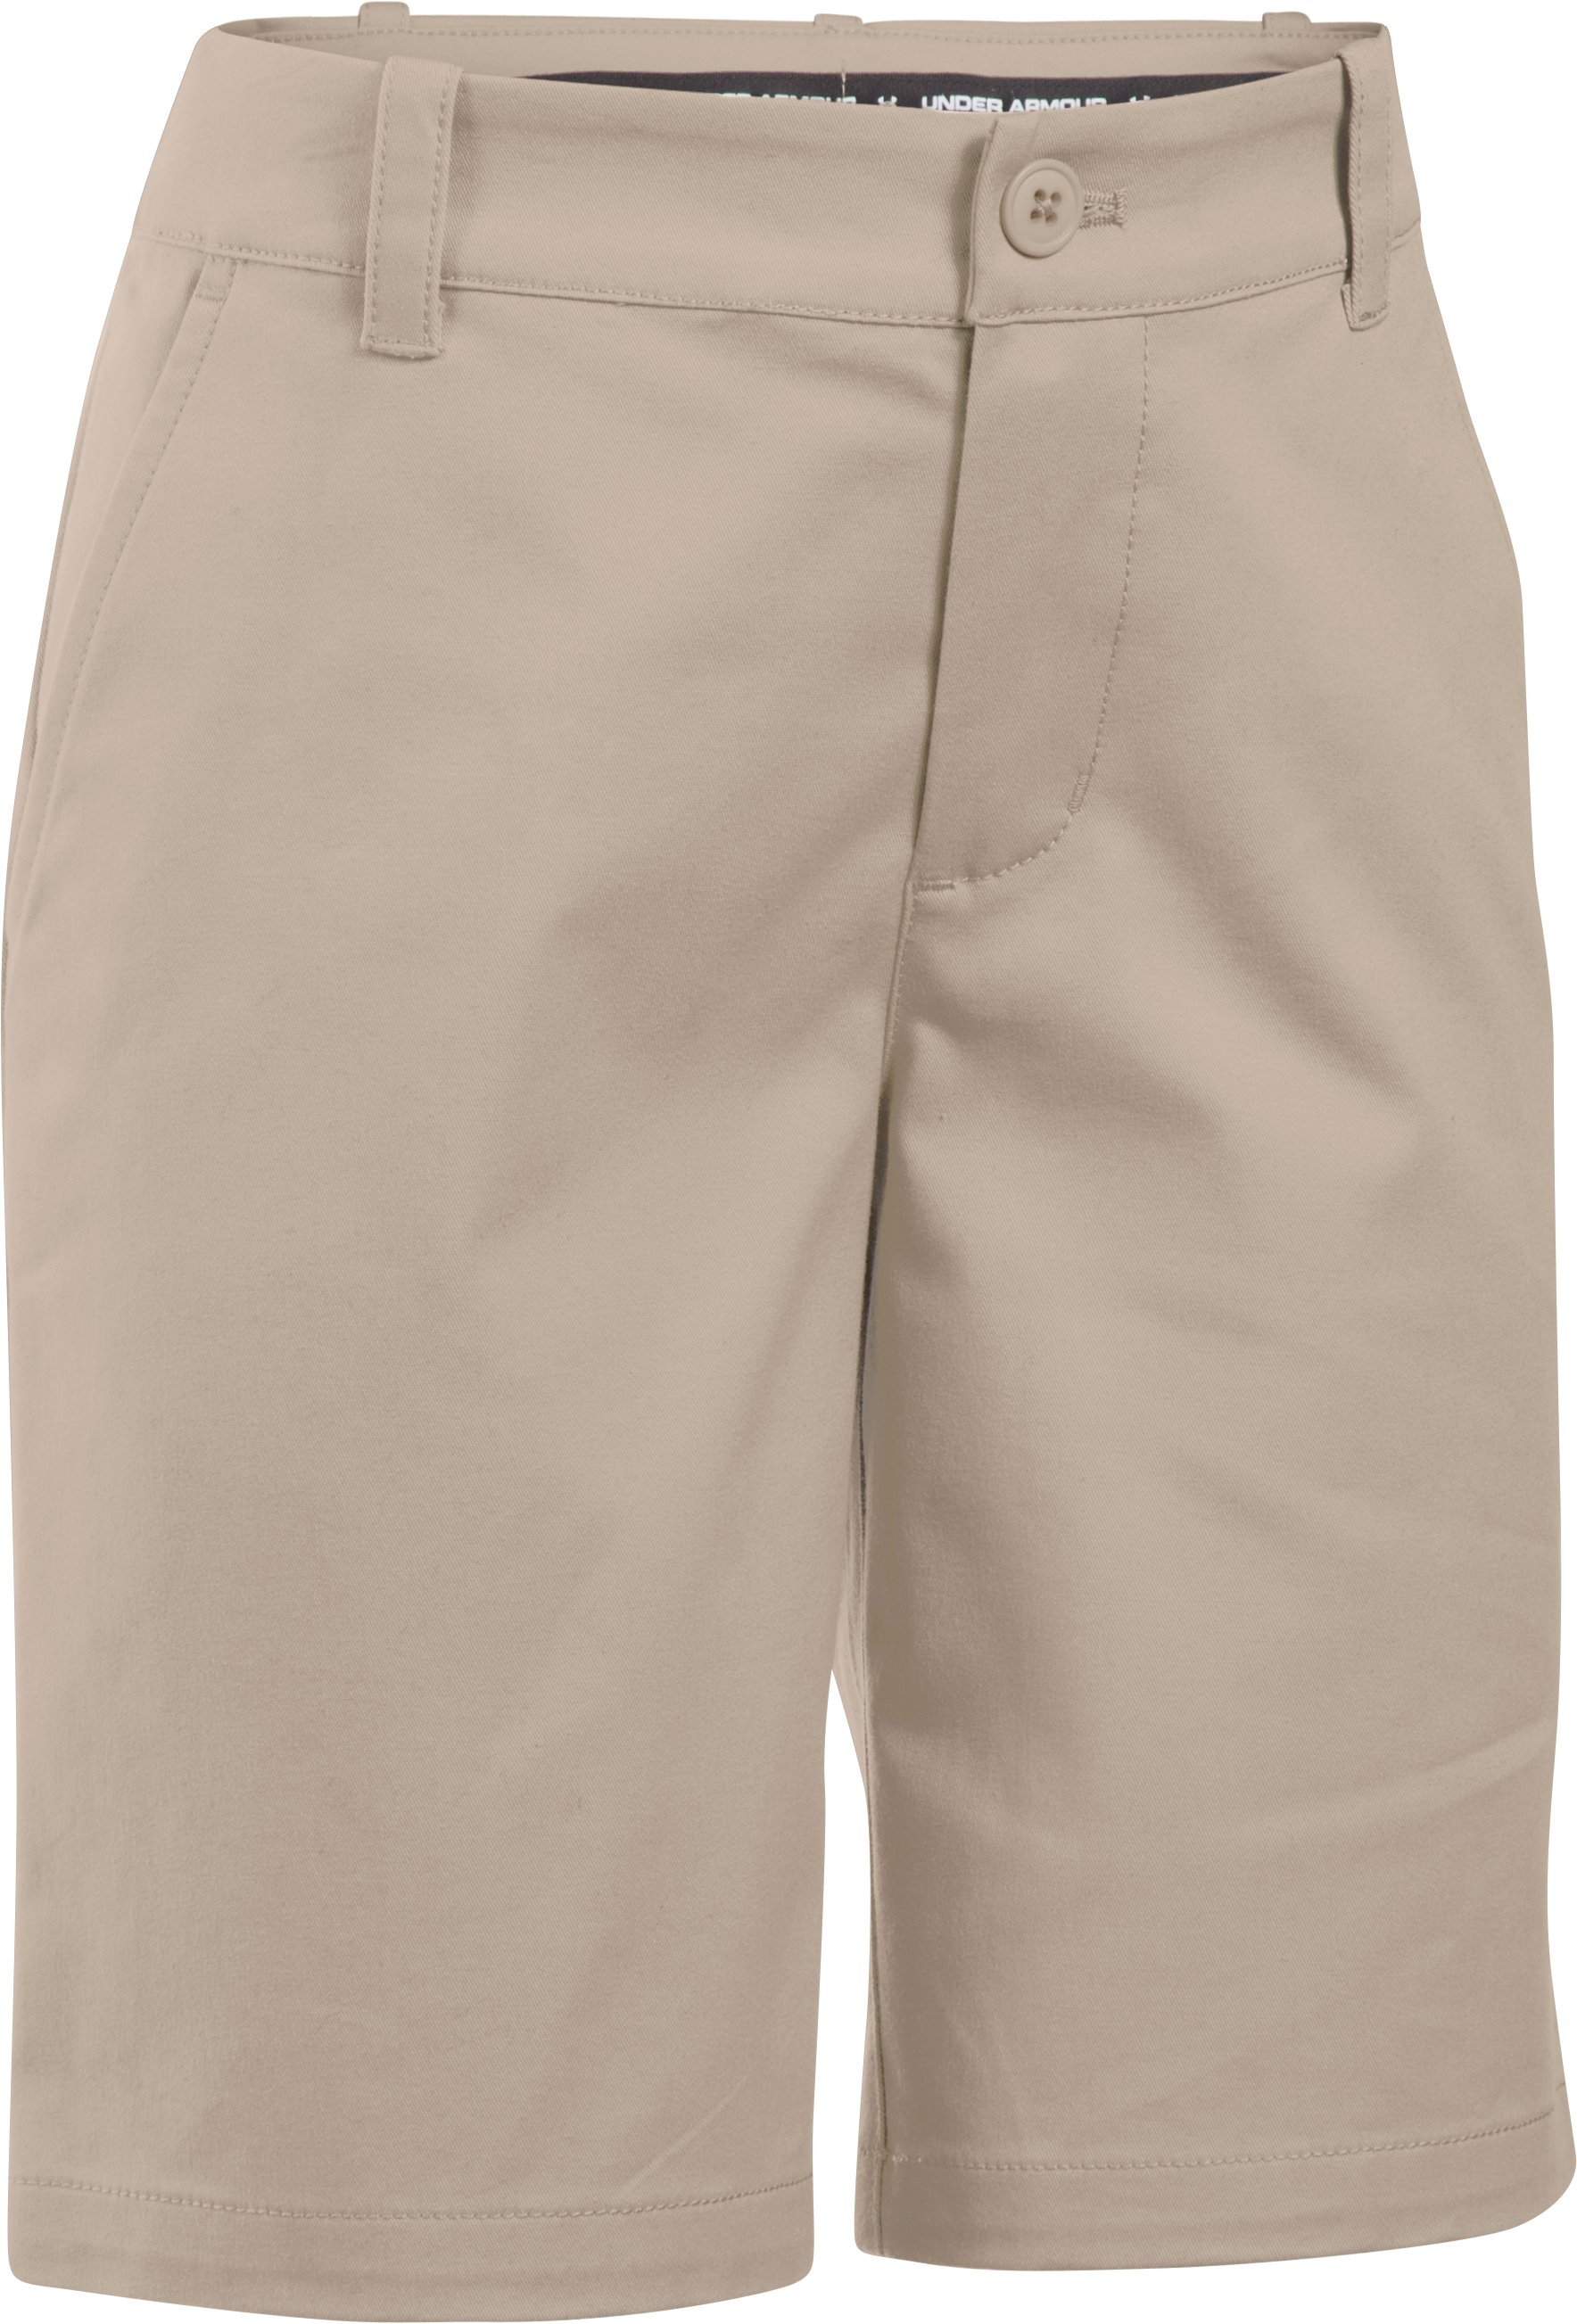 Girls' UA Uniform Chino Shorts, Desert Sand,